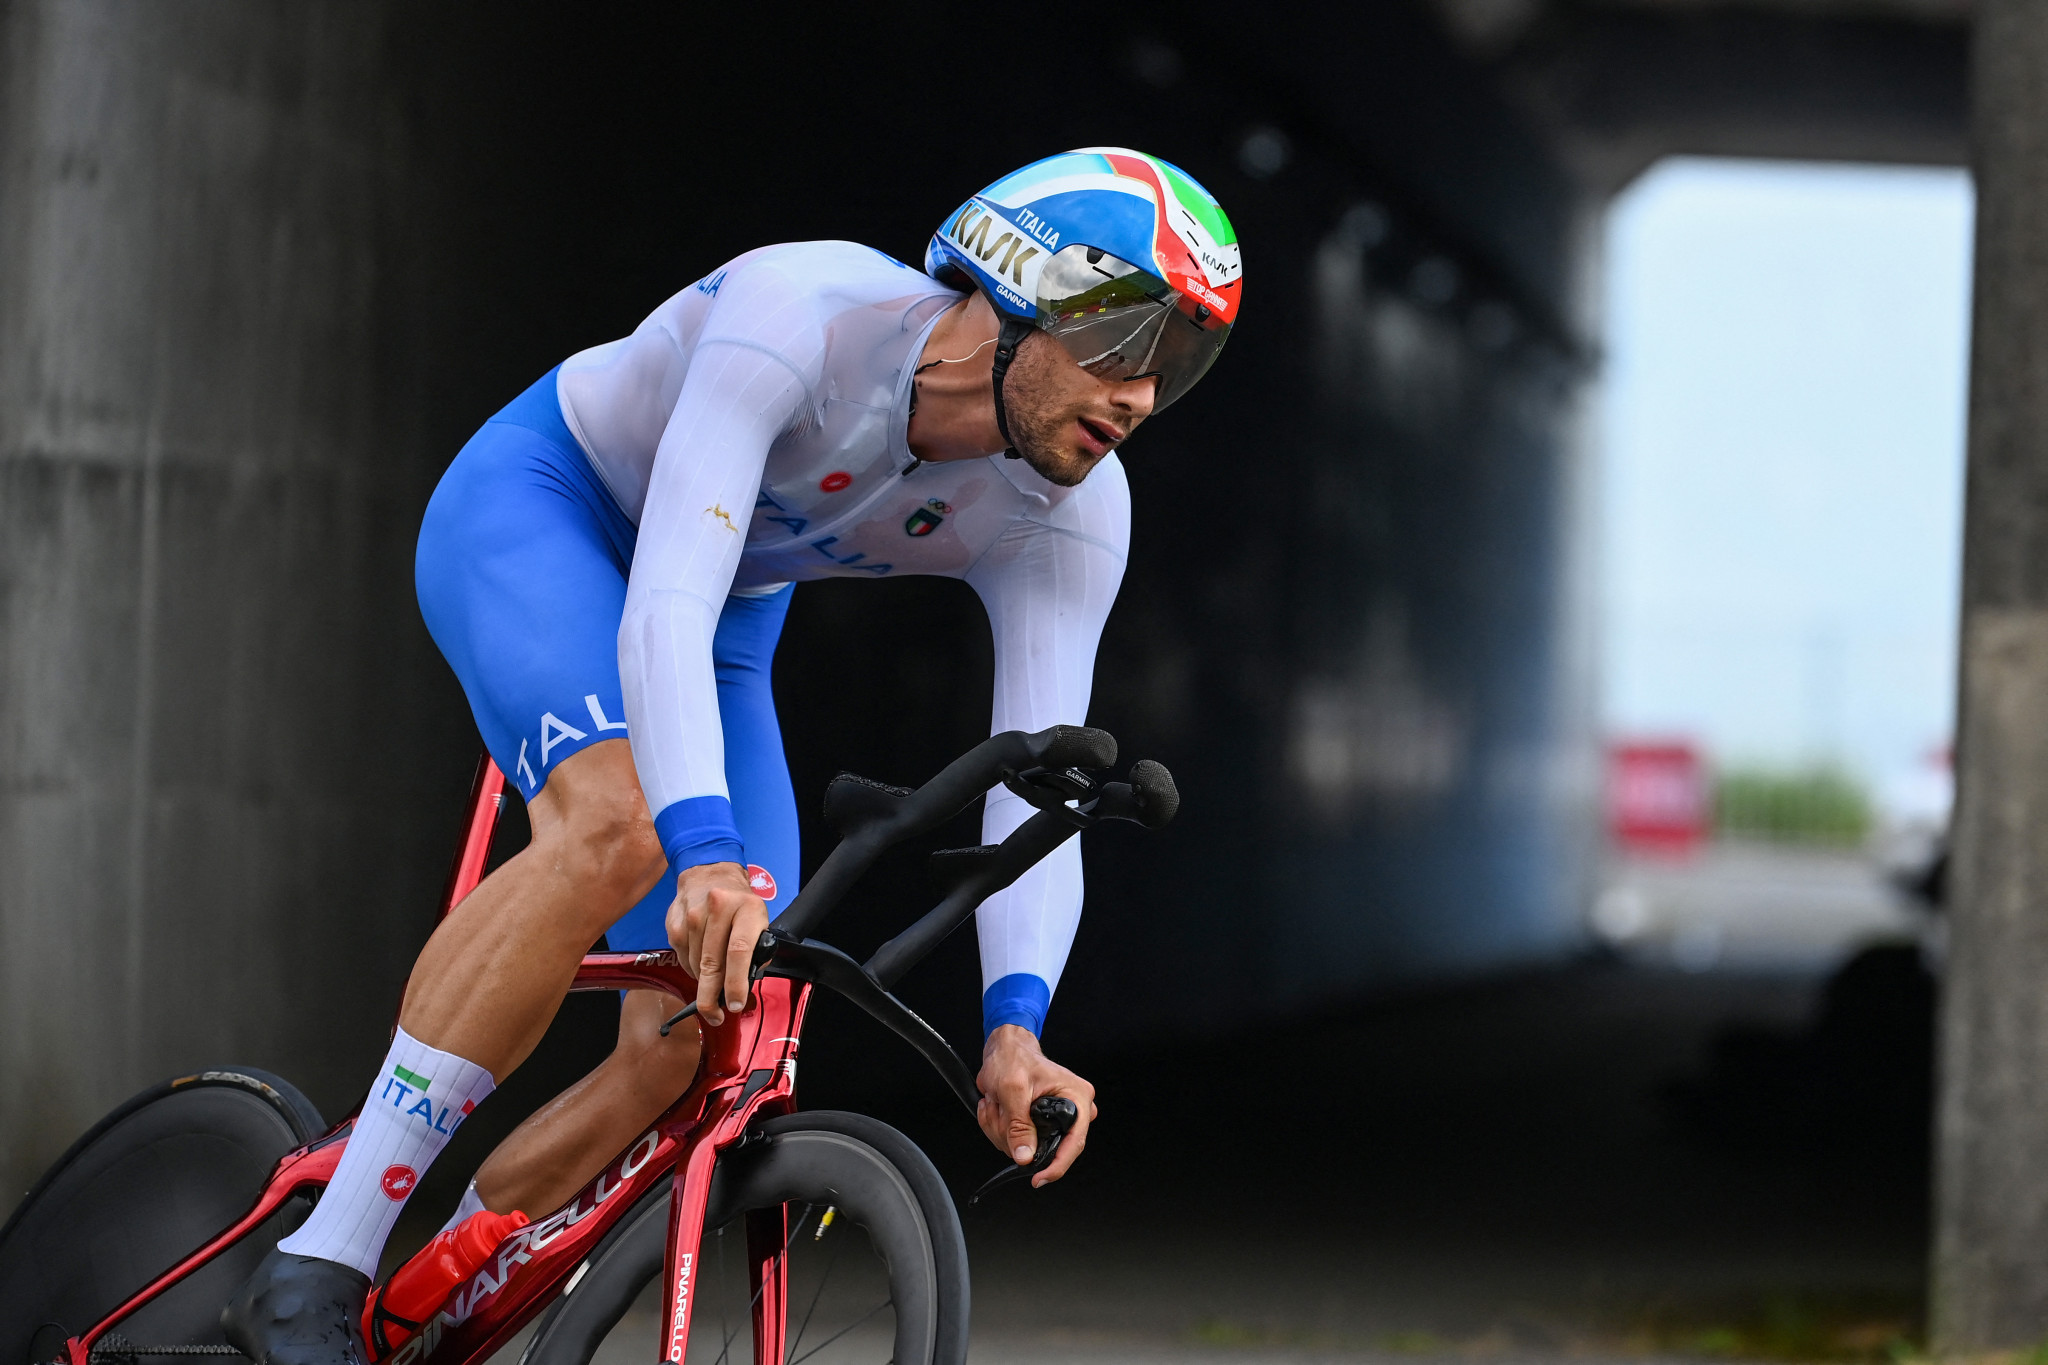 Italy triumph in mixed team relay at UEC European Road Championships in Trentino